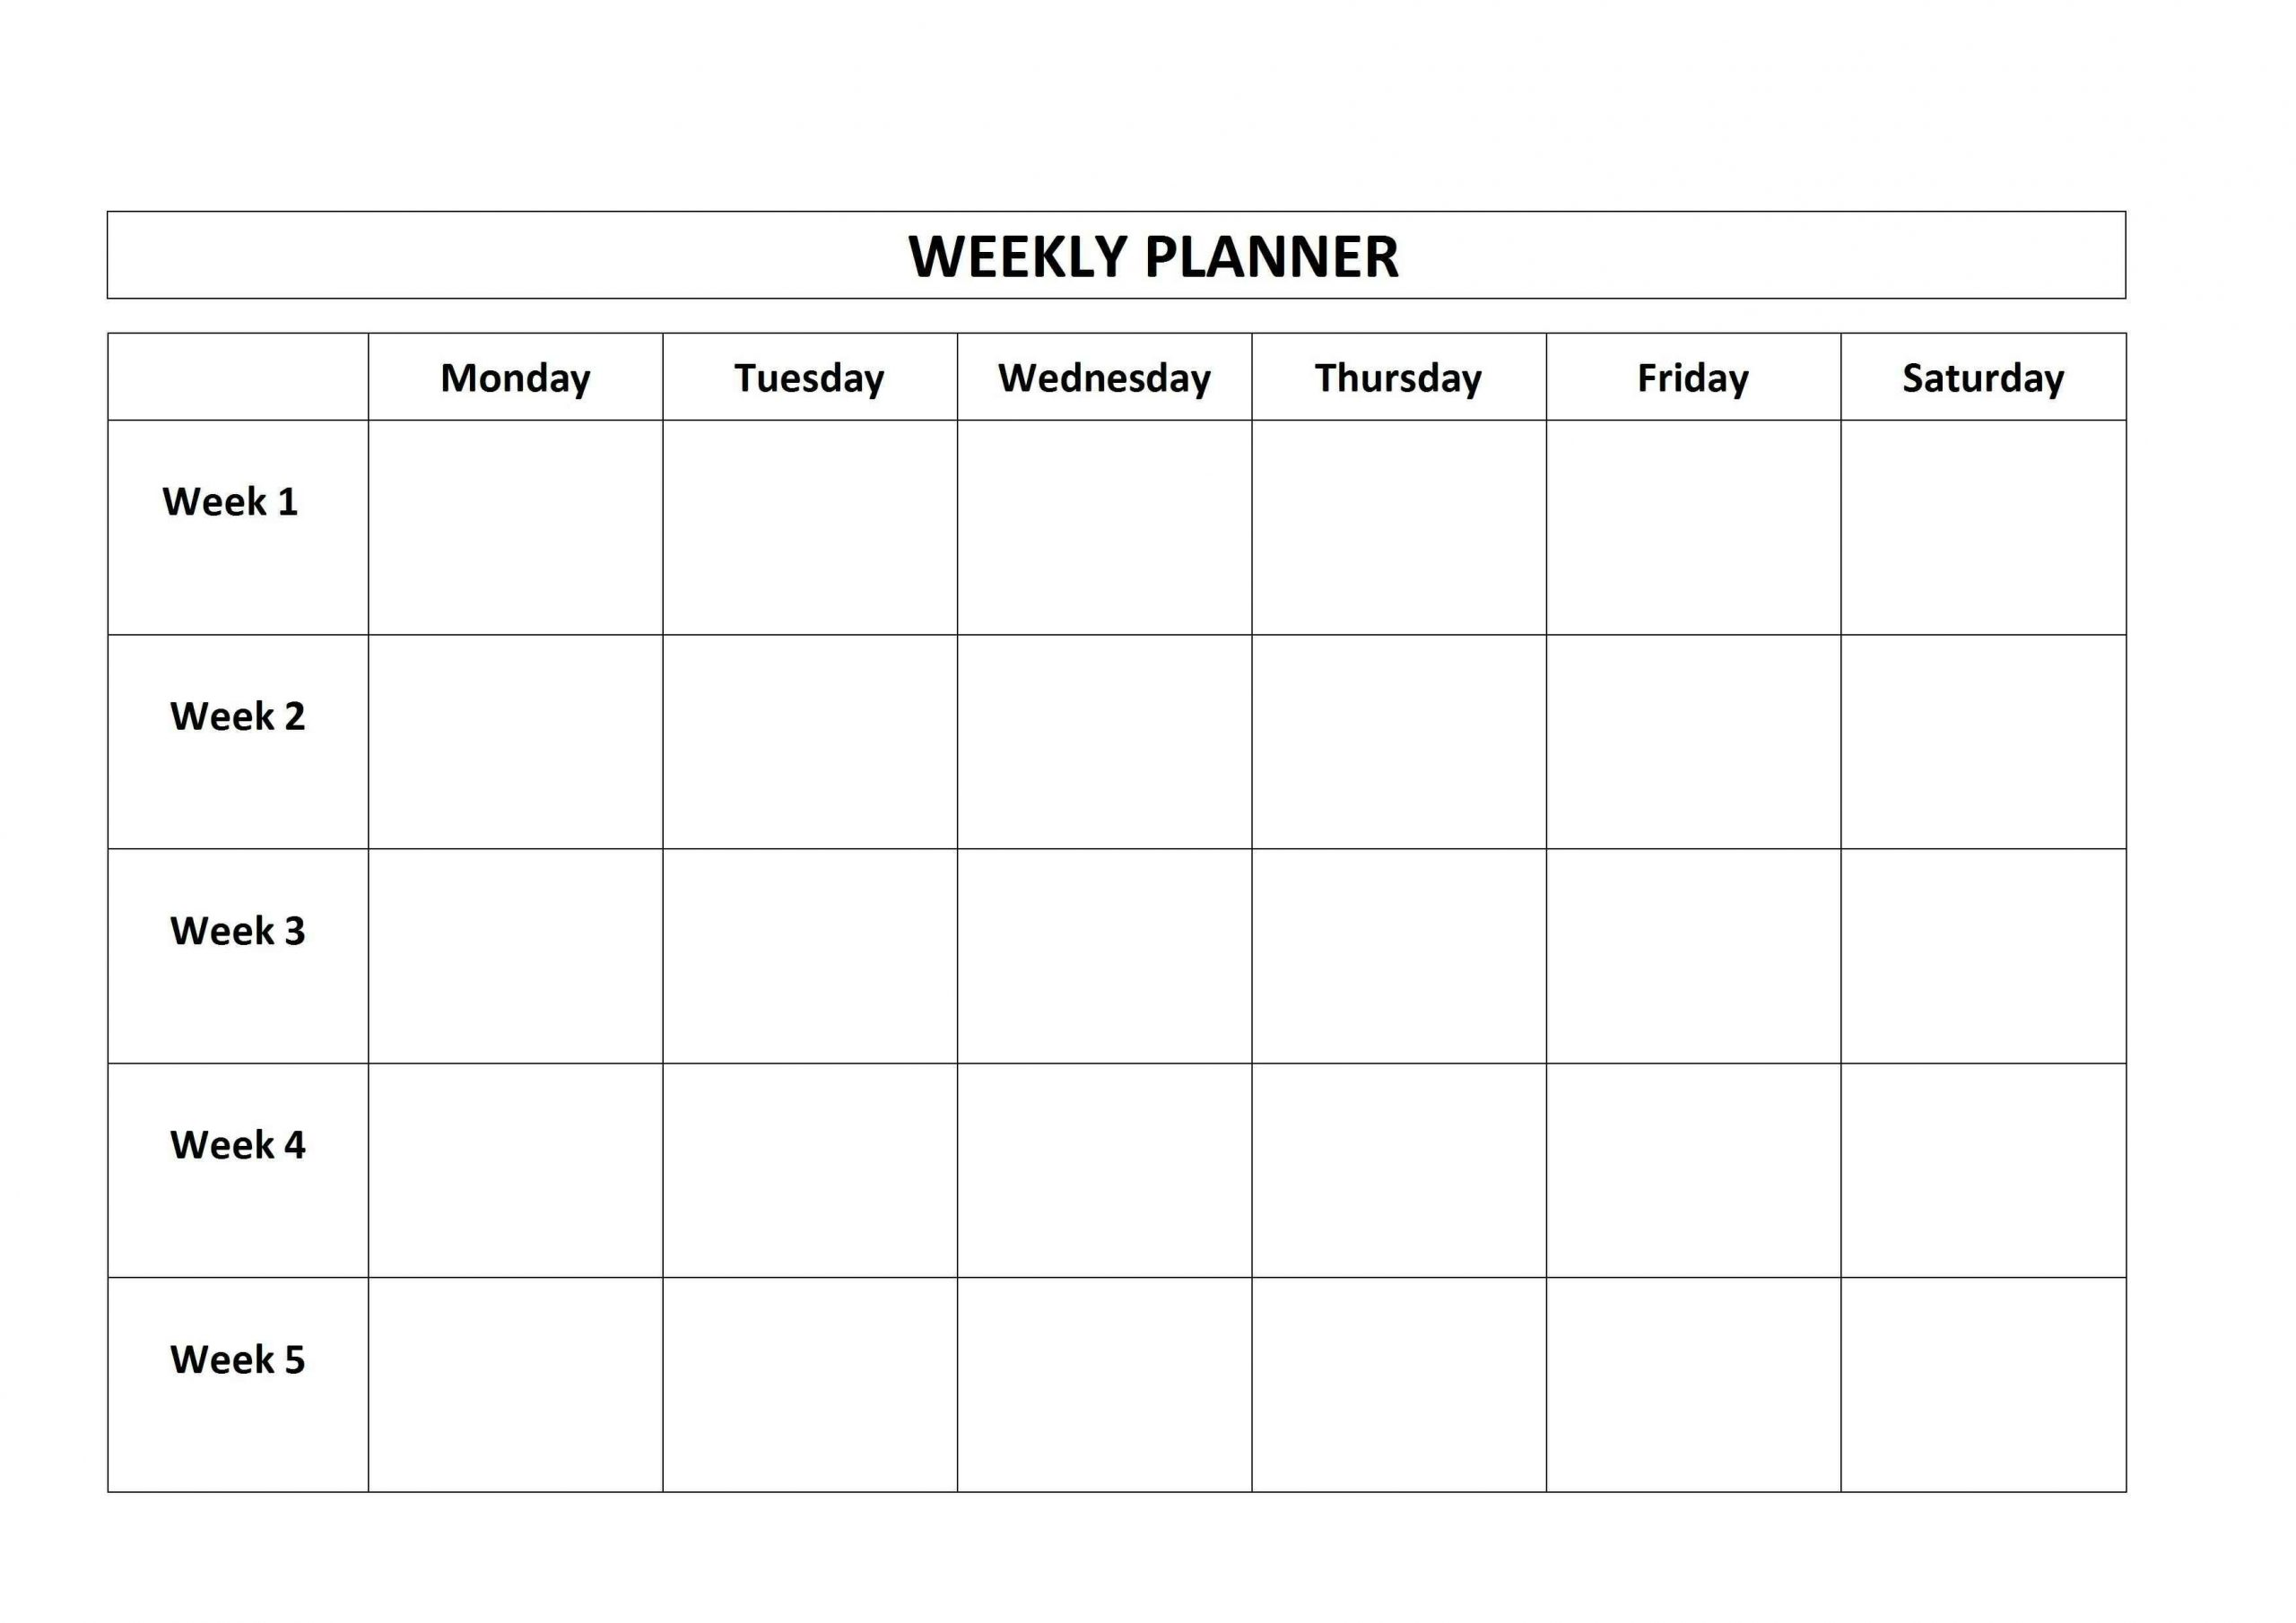 5 Day Calendar Template - Vaydile.euforic.co-Blank Calendar within Free Priintable Calendar Day By Day